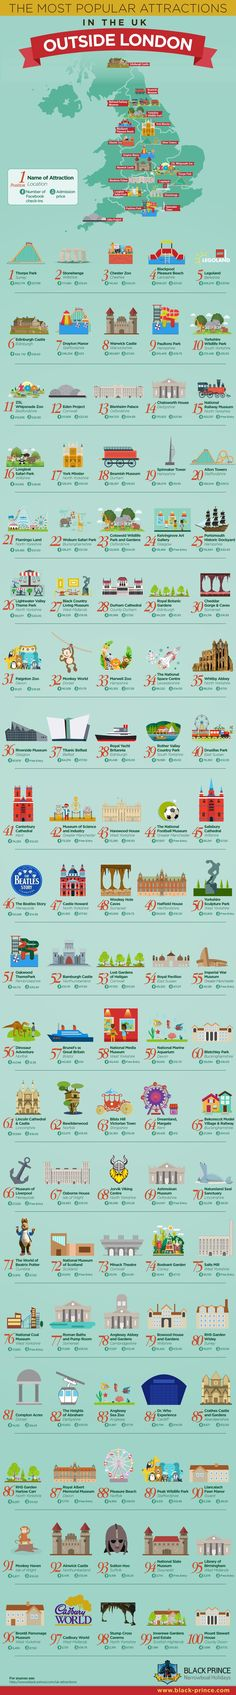 100 Most Popular Attractions Outside Of London [Infographic]